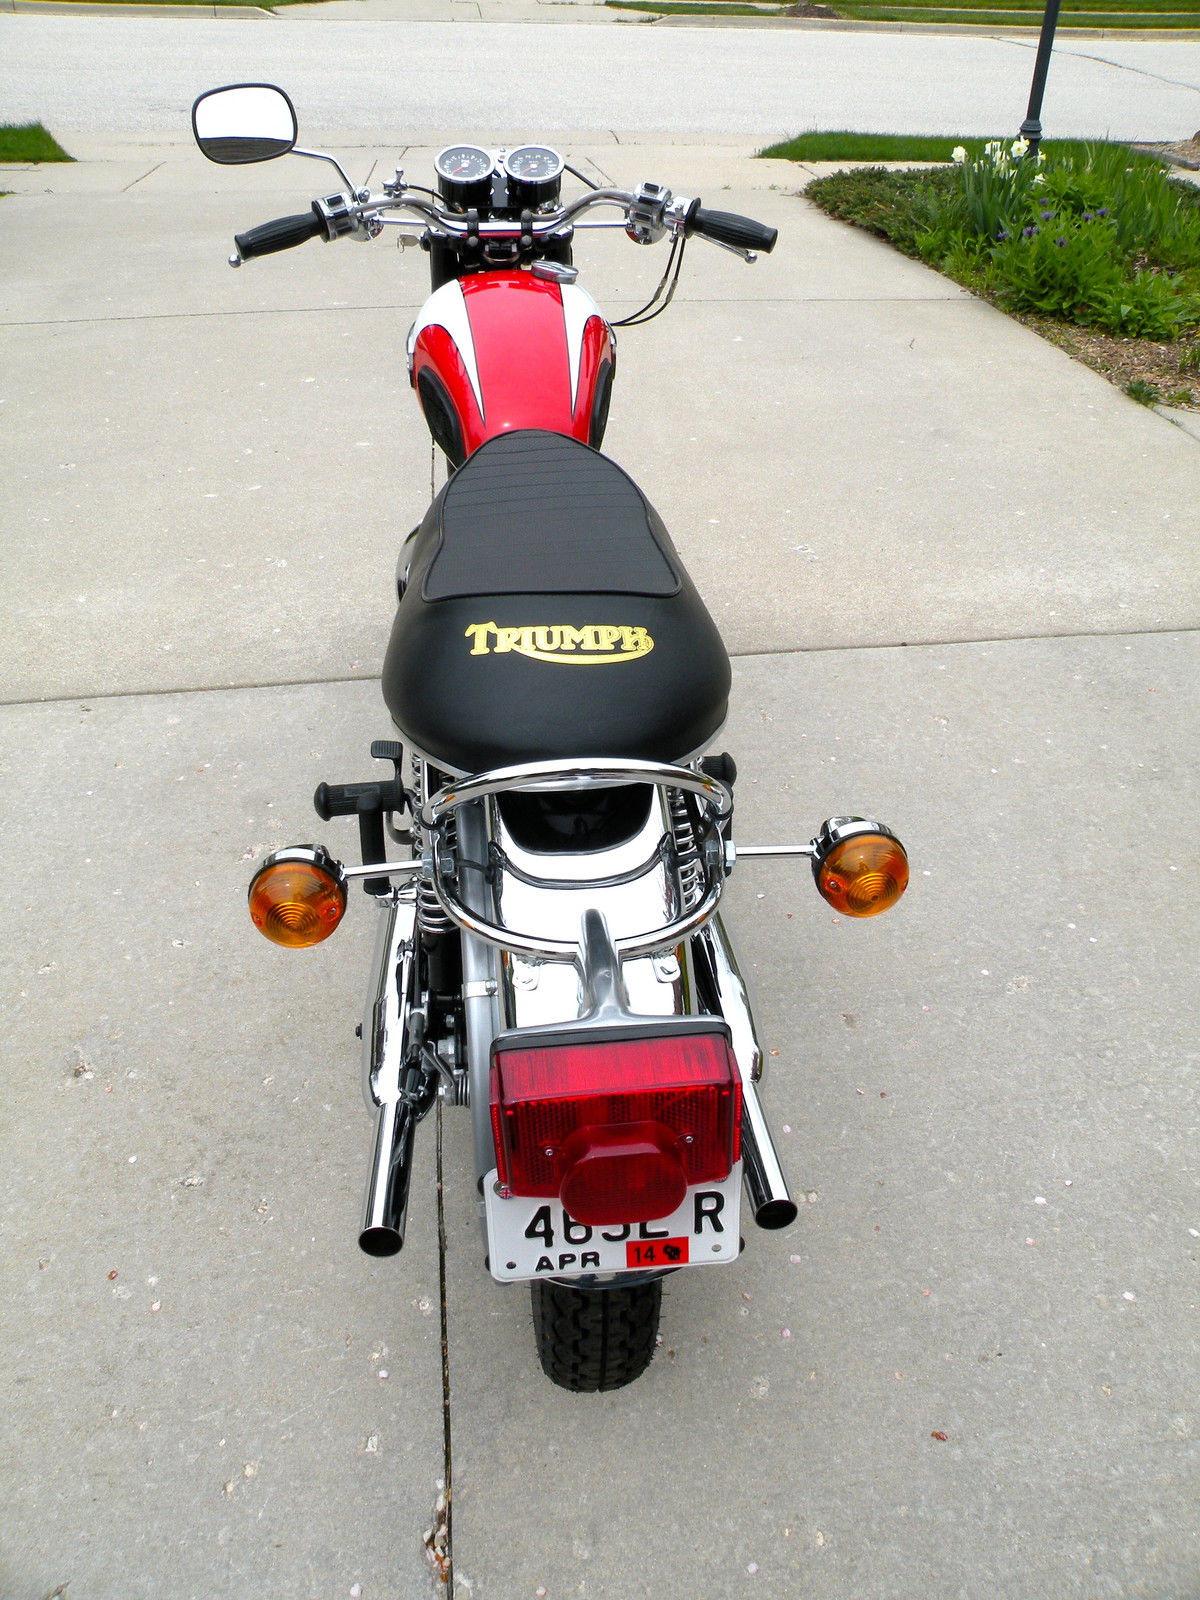 Triumph Daytona - 1973 - Seat. Rear Fender, Rear Light, Flasjers and Grab Rail.